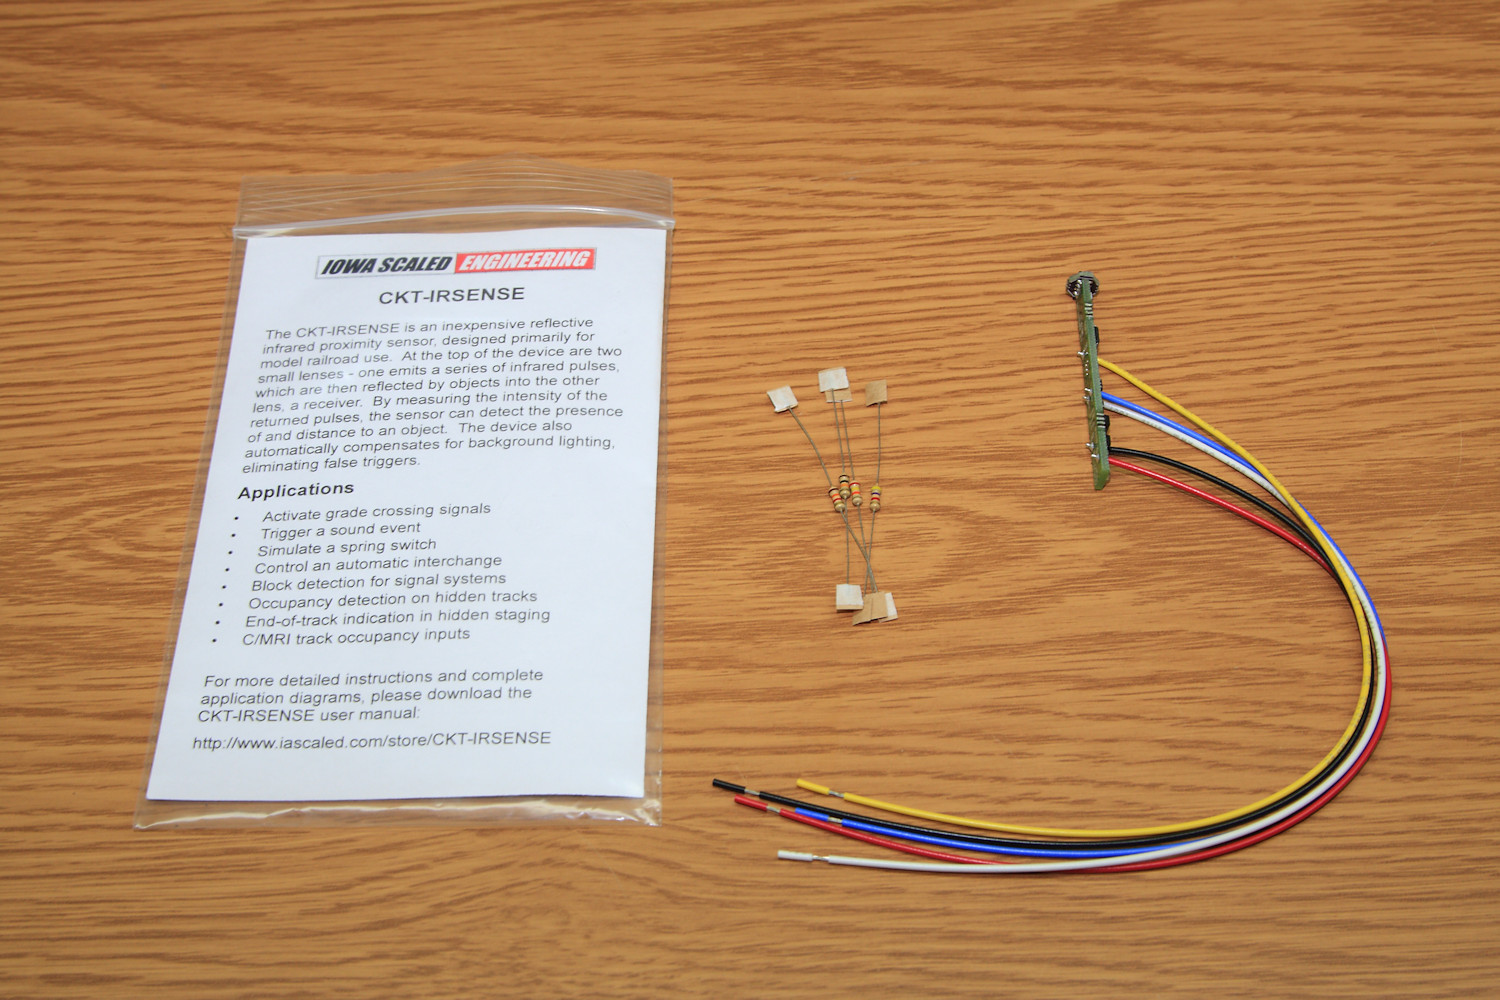 2018 Optical Detector Roundup Iowa Scaled Engineering Llc Infrared Proximity Switch Sensor Circuit Using A Lm393 Voltage The Ckt Irsense Package